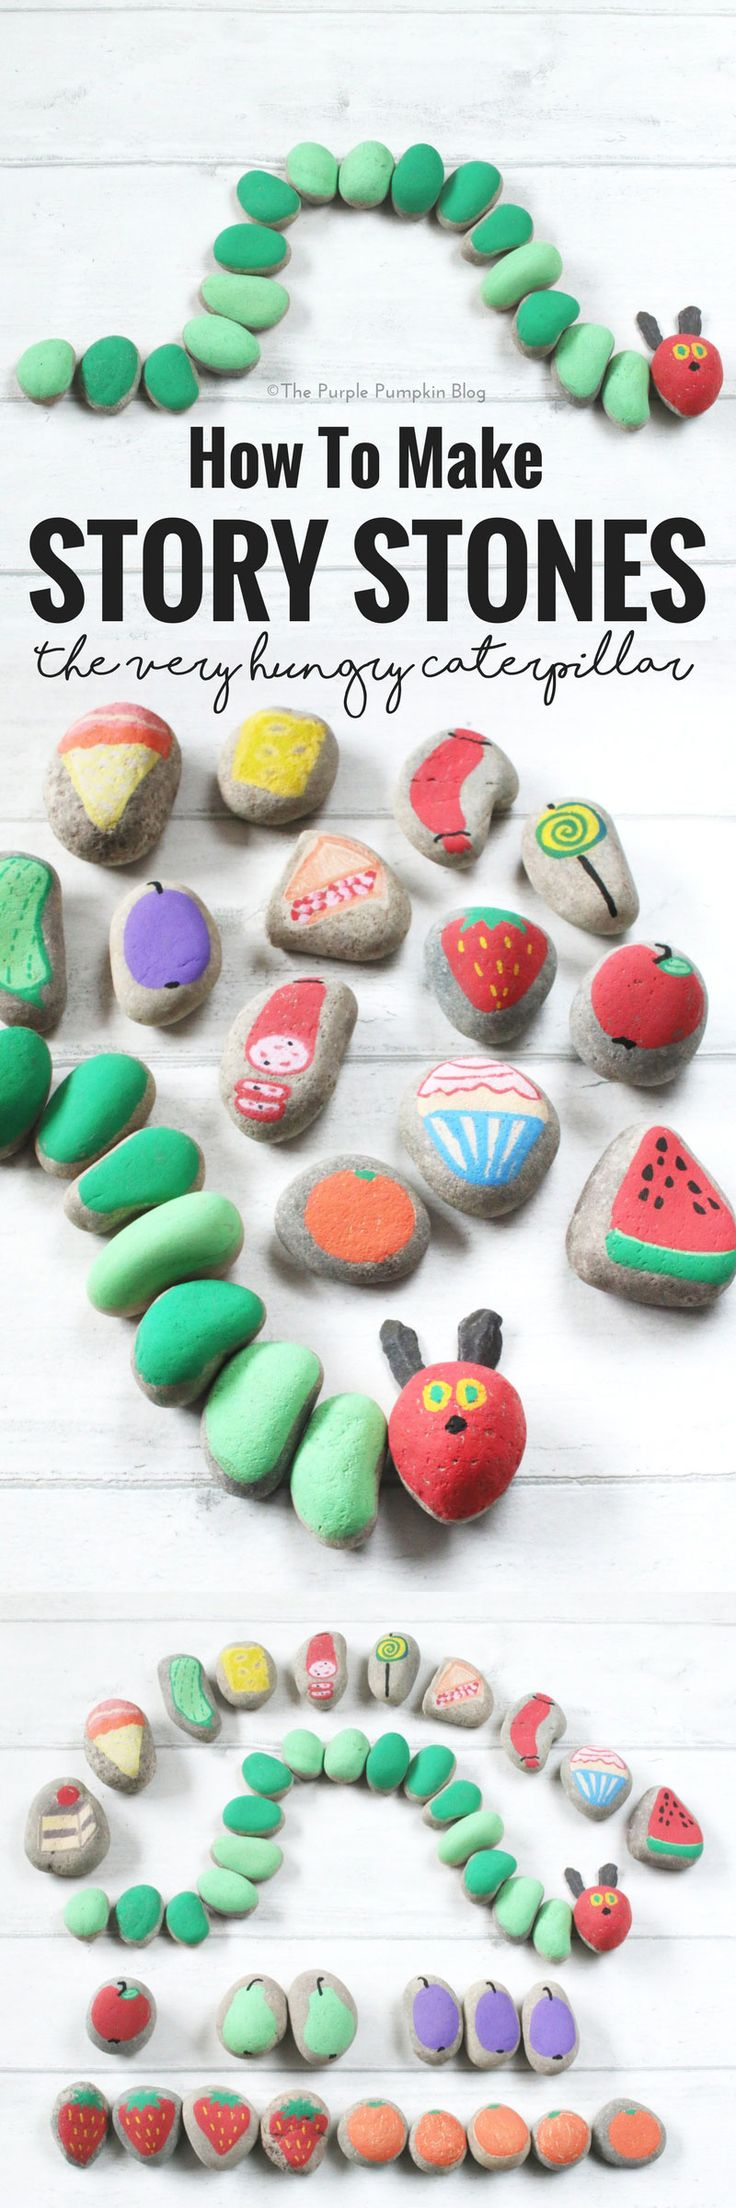 How To Make Story Stones! This is a fun way to tell and make up stories with children. Paint objects and characters onto stones and use them to tell a favourite story - like the beloved Very Hungry Caterpillar! Or a classic fairy tale like The Three Little Pigs. Story Stones can help [you and] your child be creative and learn the art of story telling. Using paint pens like Posca Pens makes things a lot easier (and less messy!) than regular paint. Use varnish to prolong their life. Once you…